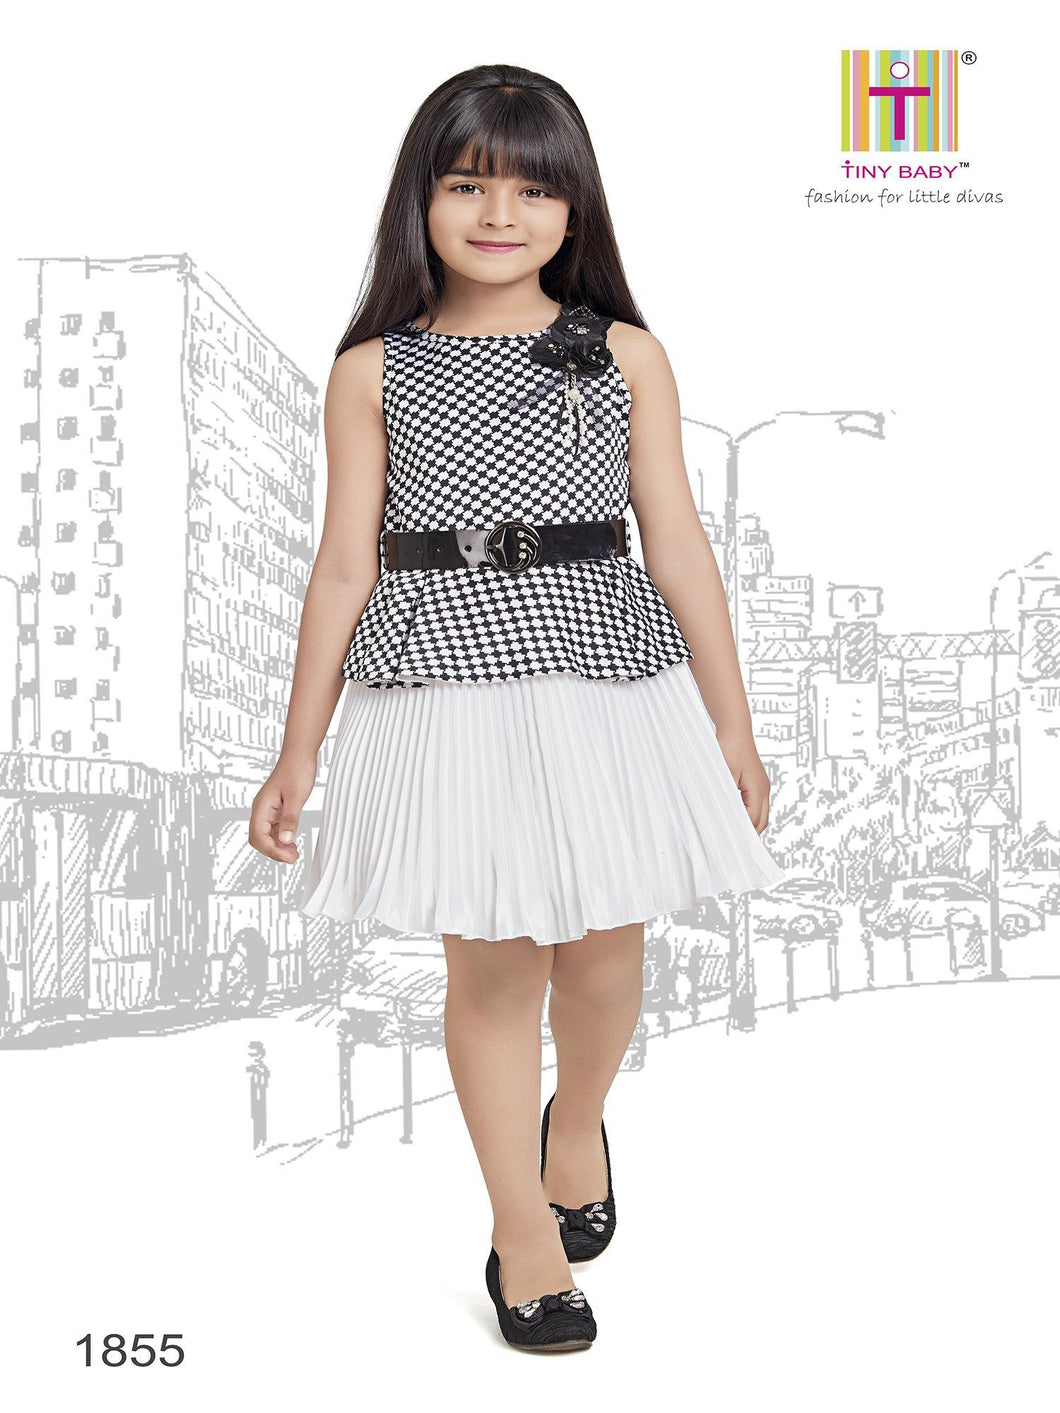 Tiny Baby Black Colored Dress - 1855 Black